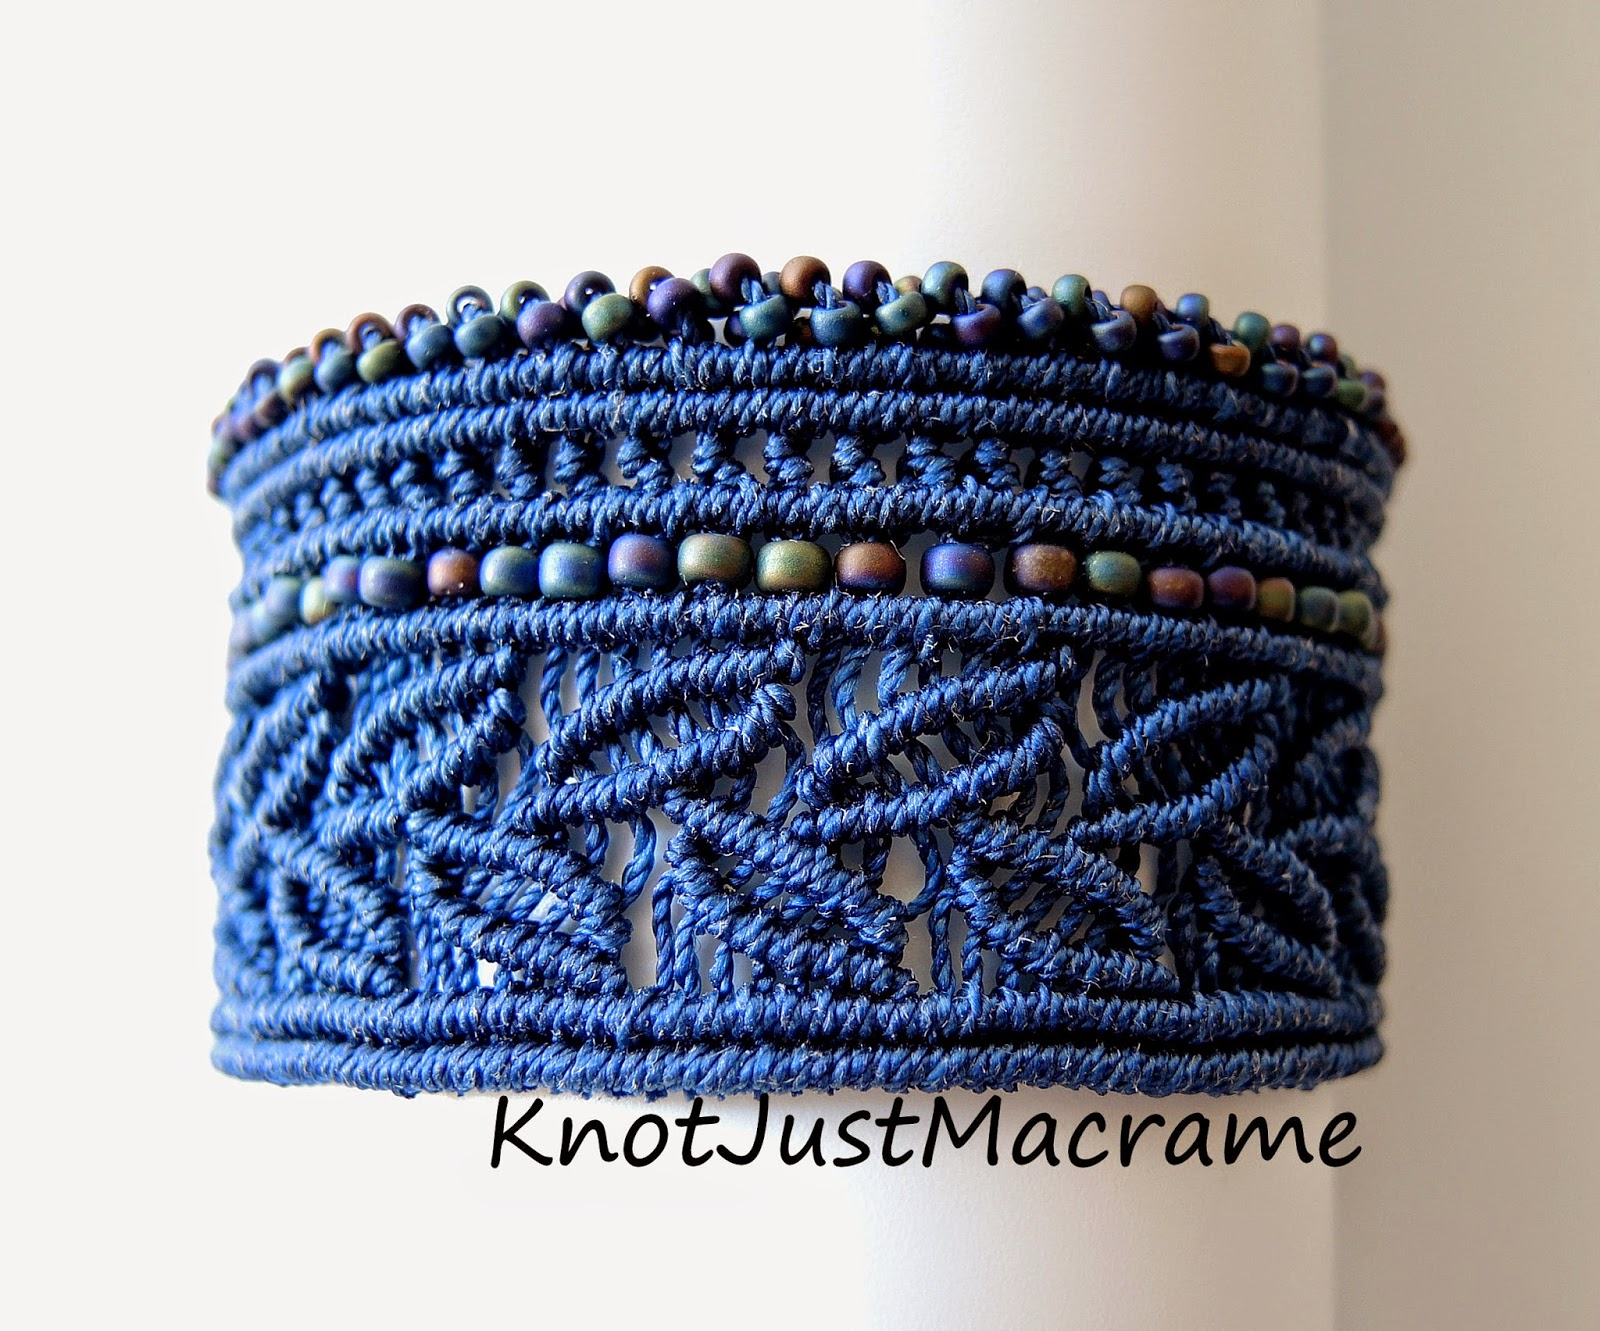 Beaded macrame cuff style bracelet in blue by Sherri Stokey